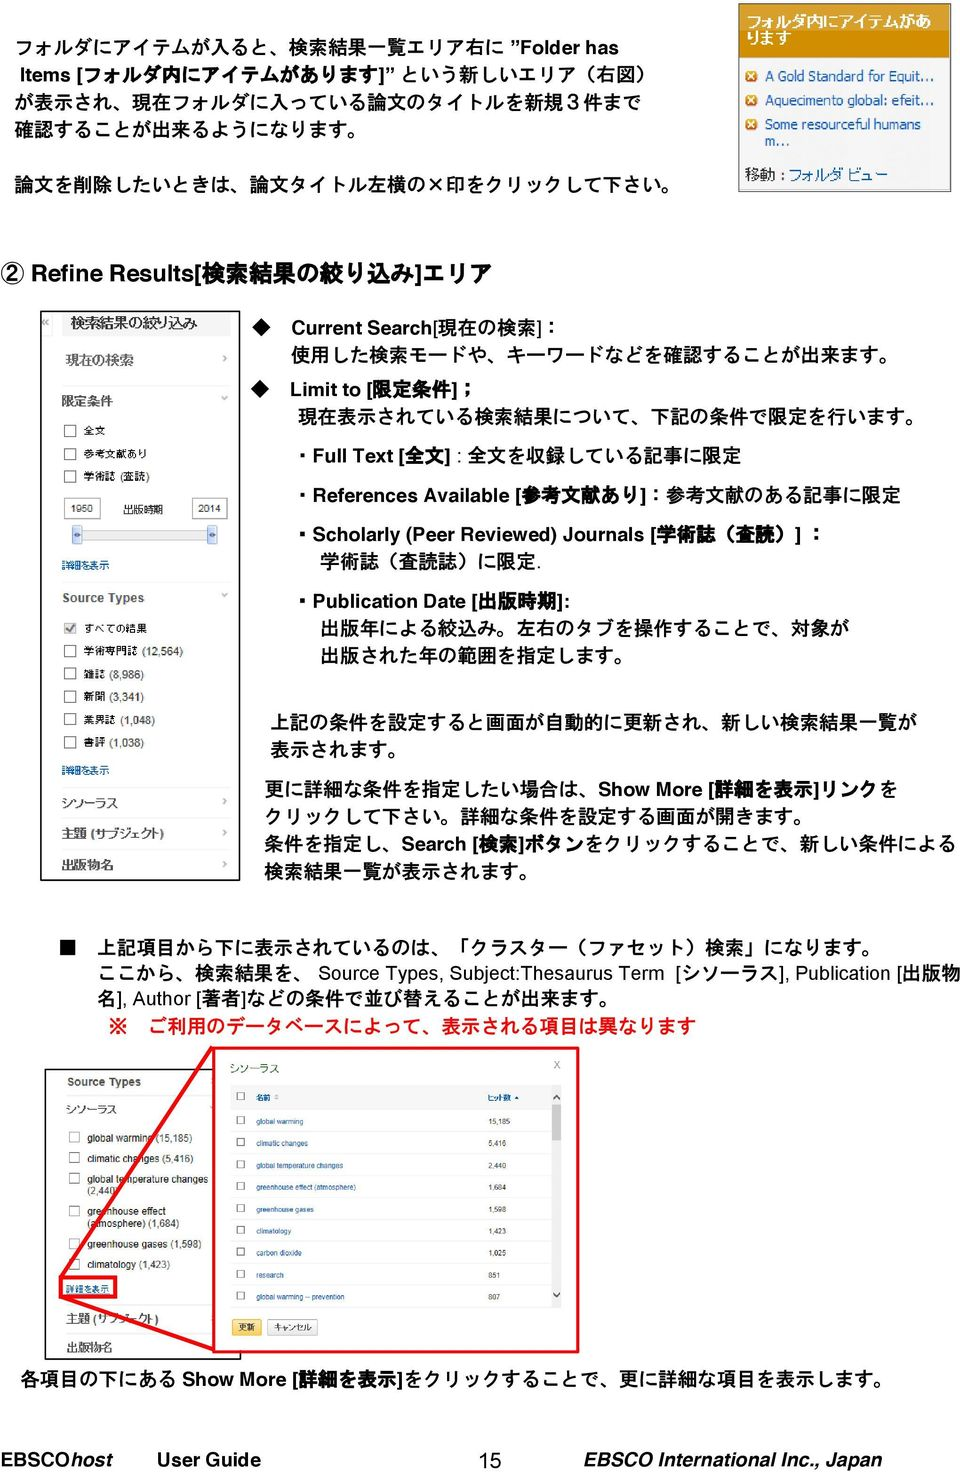 Full Text [ 全 文 ] : 全 文 を 収 録 している 記 事 に 限 定 References Available [ 参 考 文 献 あり]: 参 考 文 献 のある 記 事 に 限 定 Scholarly (Peer Reviewed) Journals [ 学 術 誌 ( 査 読 )] : 学 術 誌 ( 査 読 誌 )に 限 定.